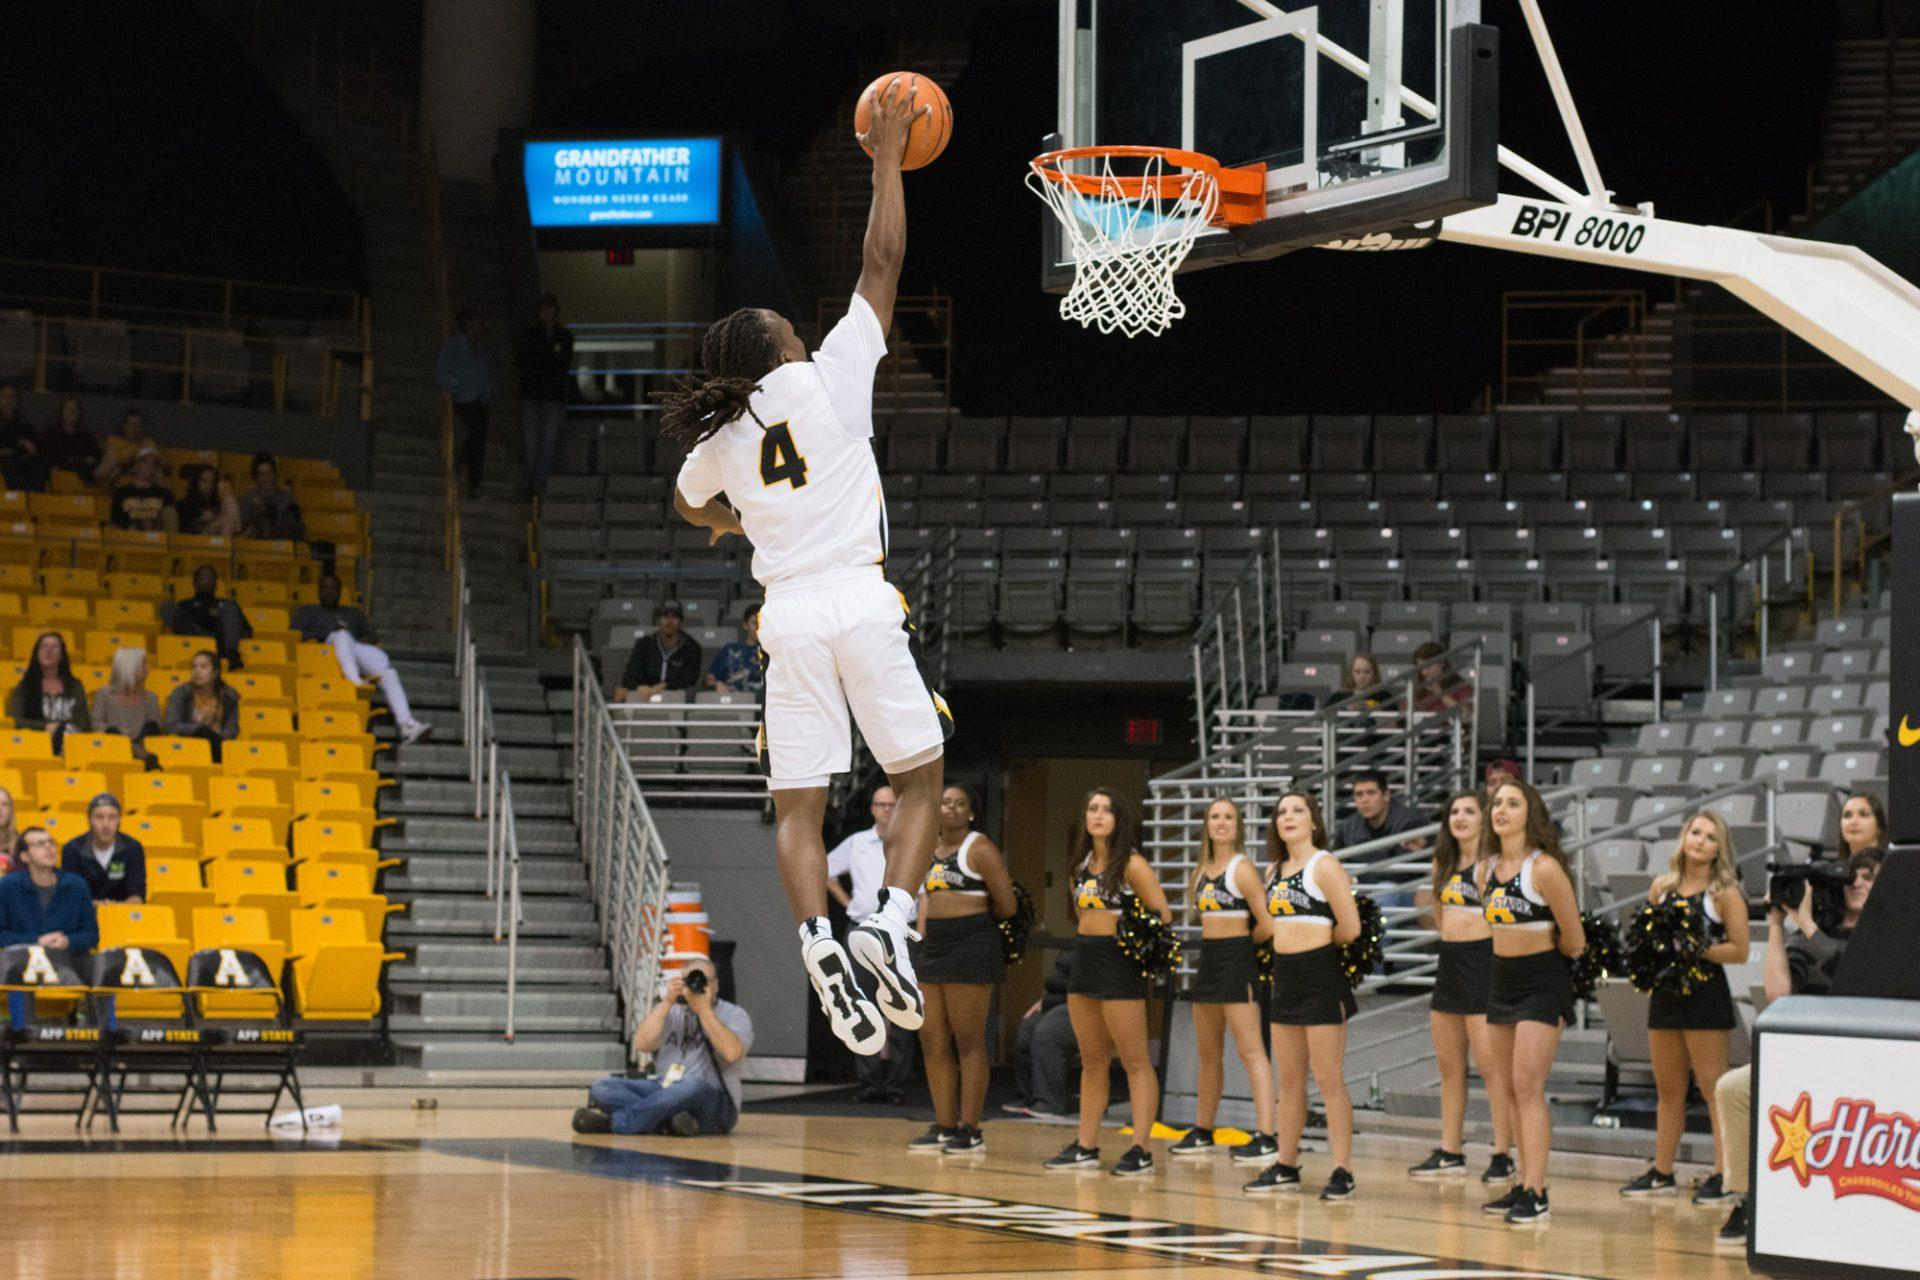 Sophomore Guard O'Showen Williams going up for the dunk against Warren Wilson Owls at the Convocation Center. The Mountaineers won 126-71.